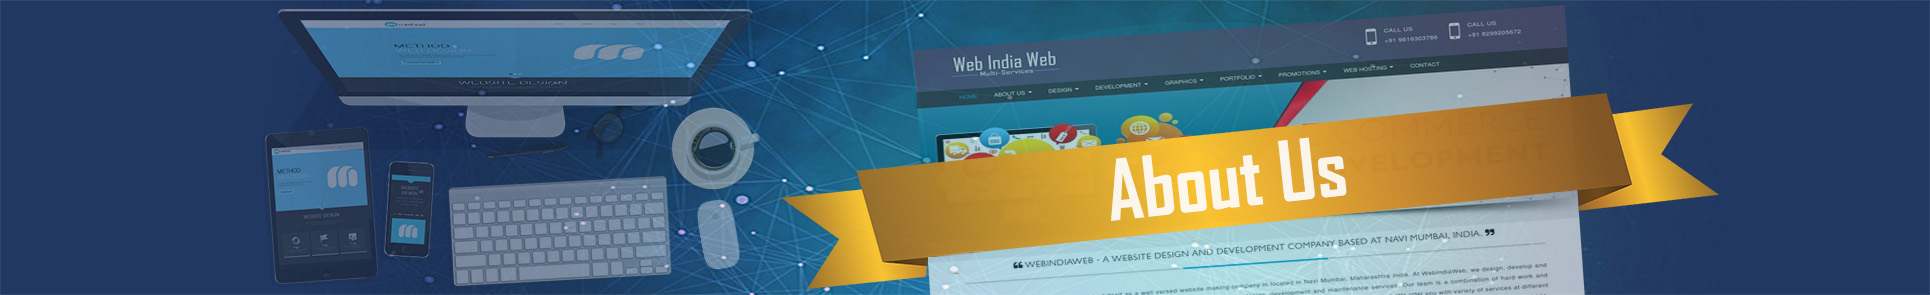 web designing company in Mumbai | SEO in Mumbai, India